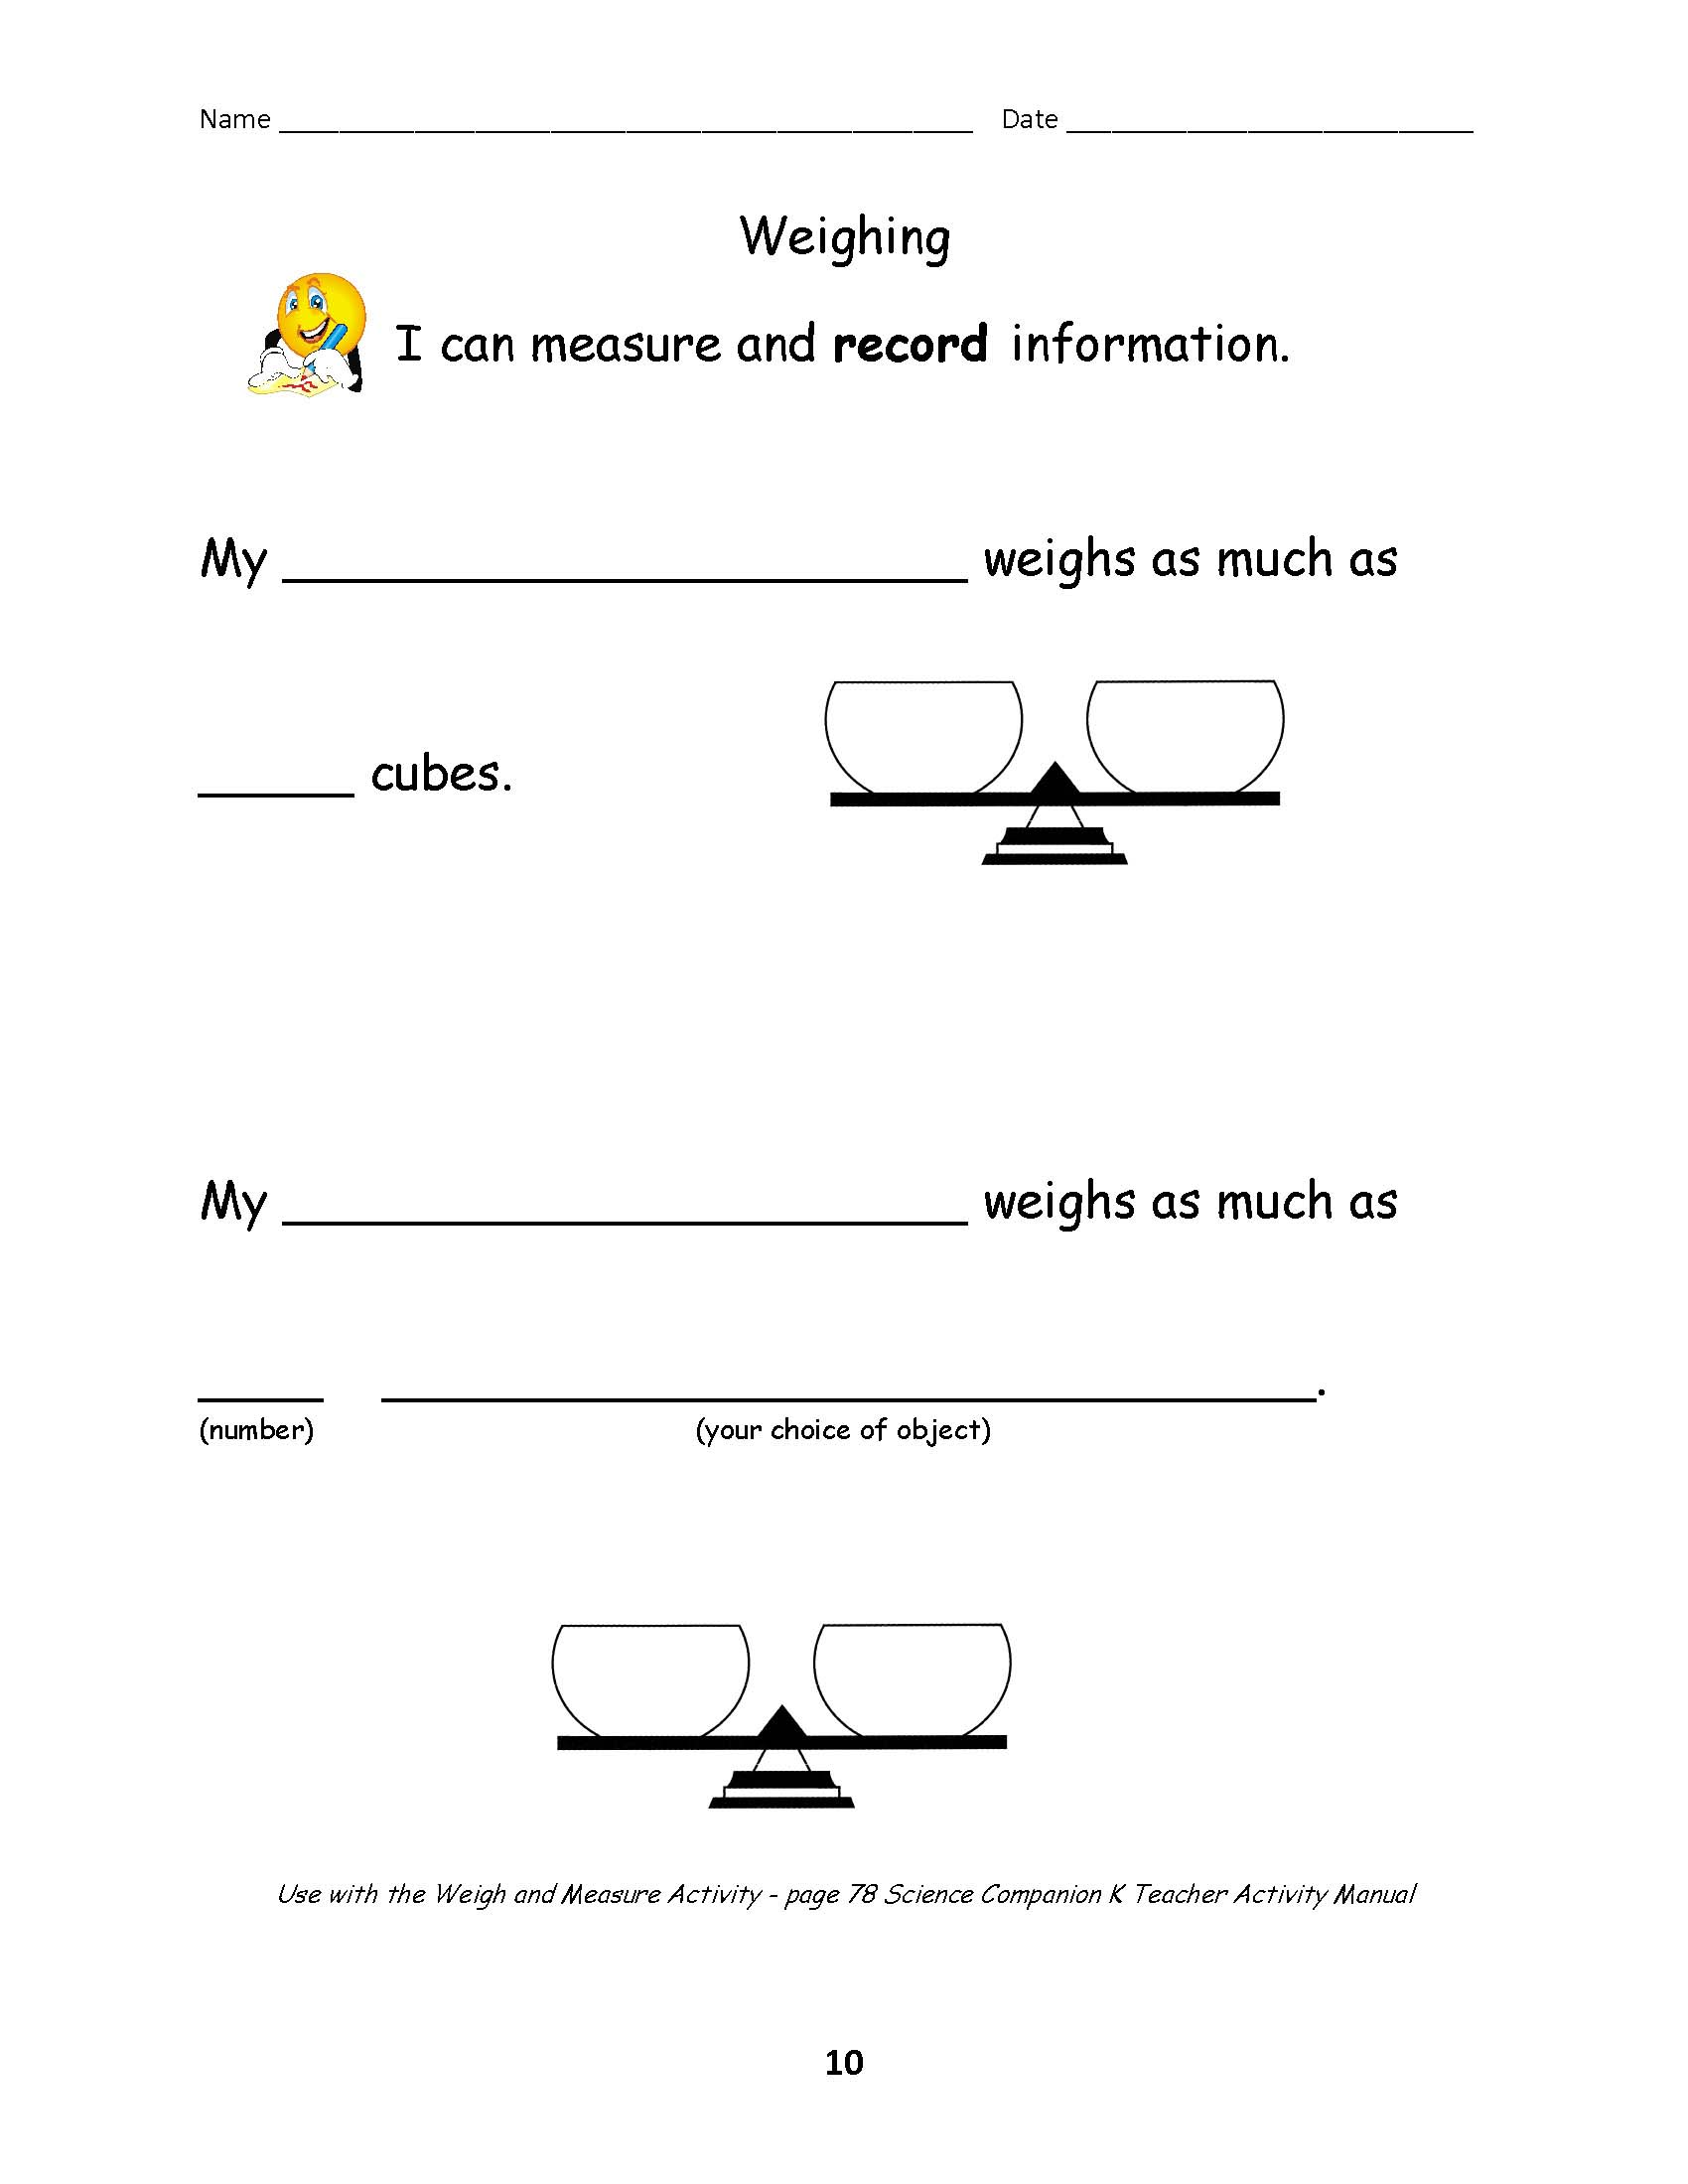 15 Best Images Of Activity Worksheets For Elementary Students